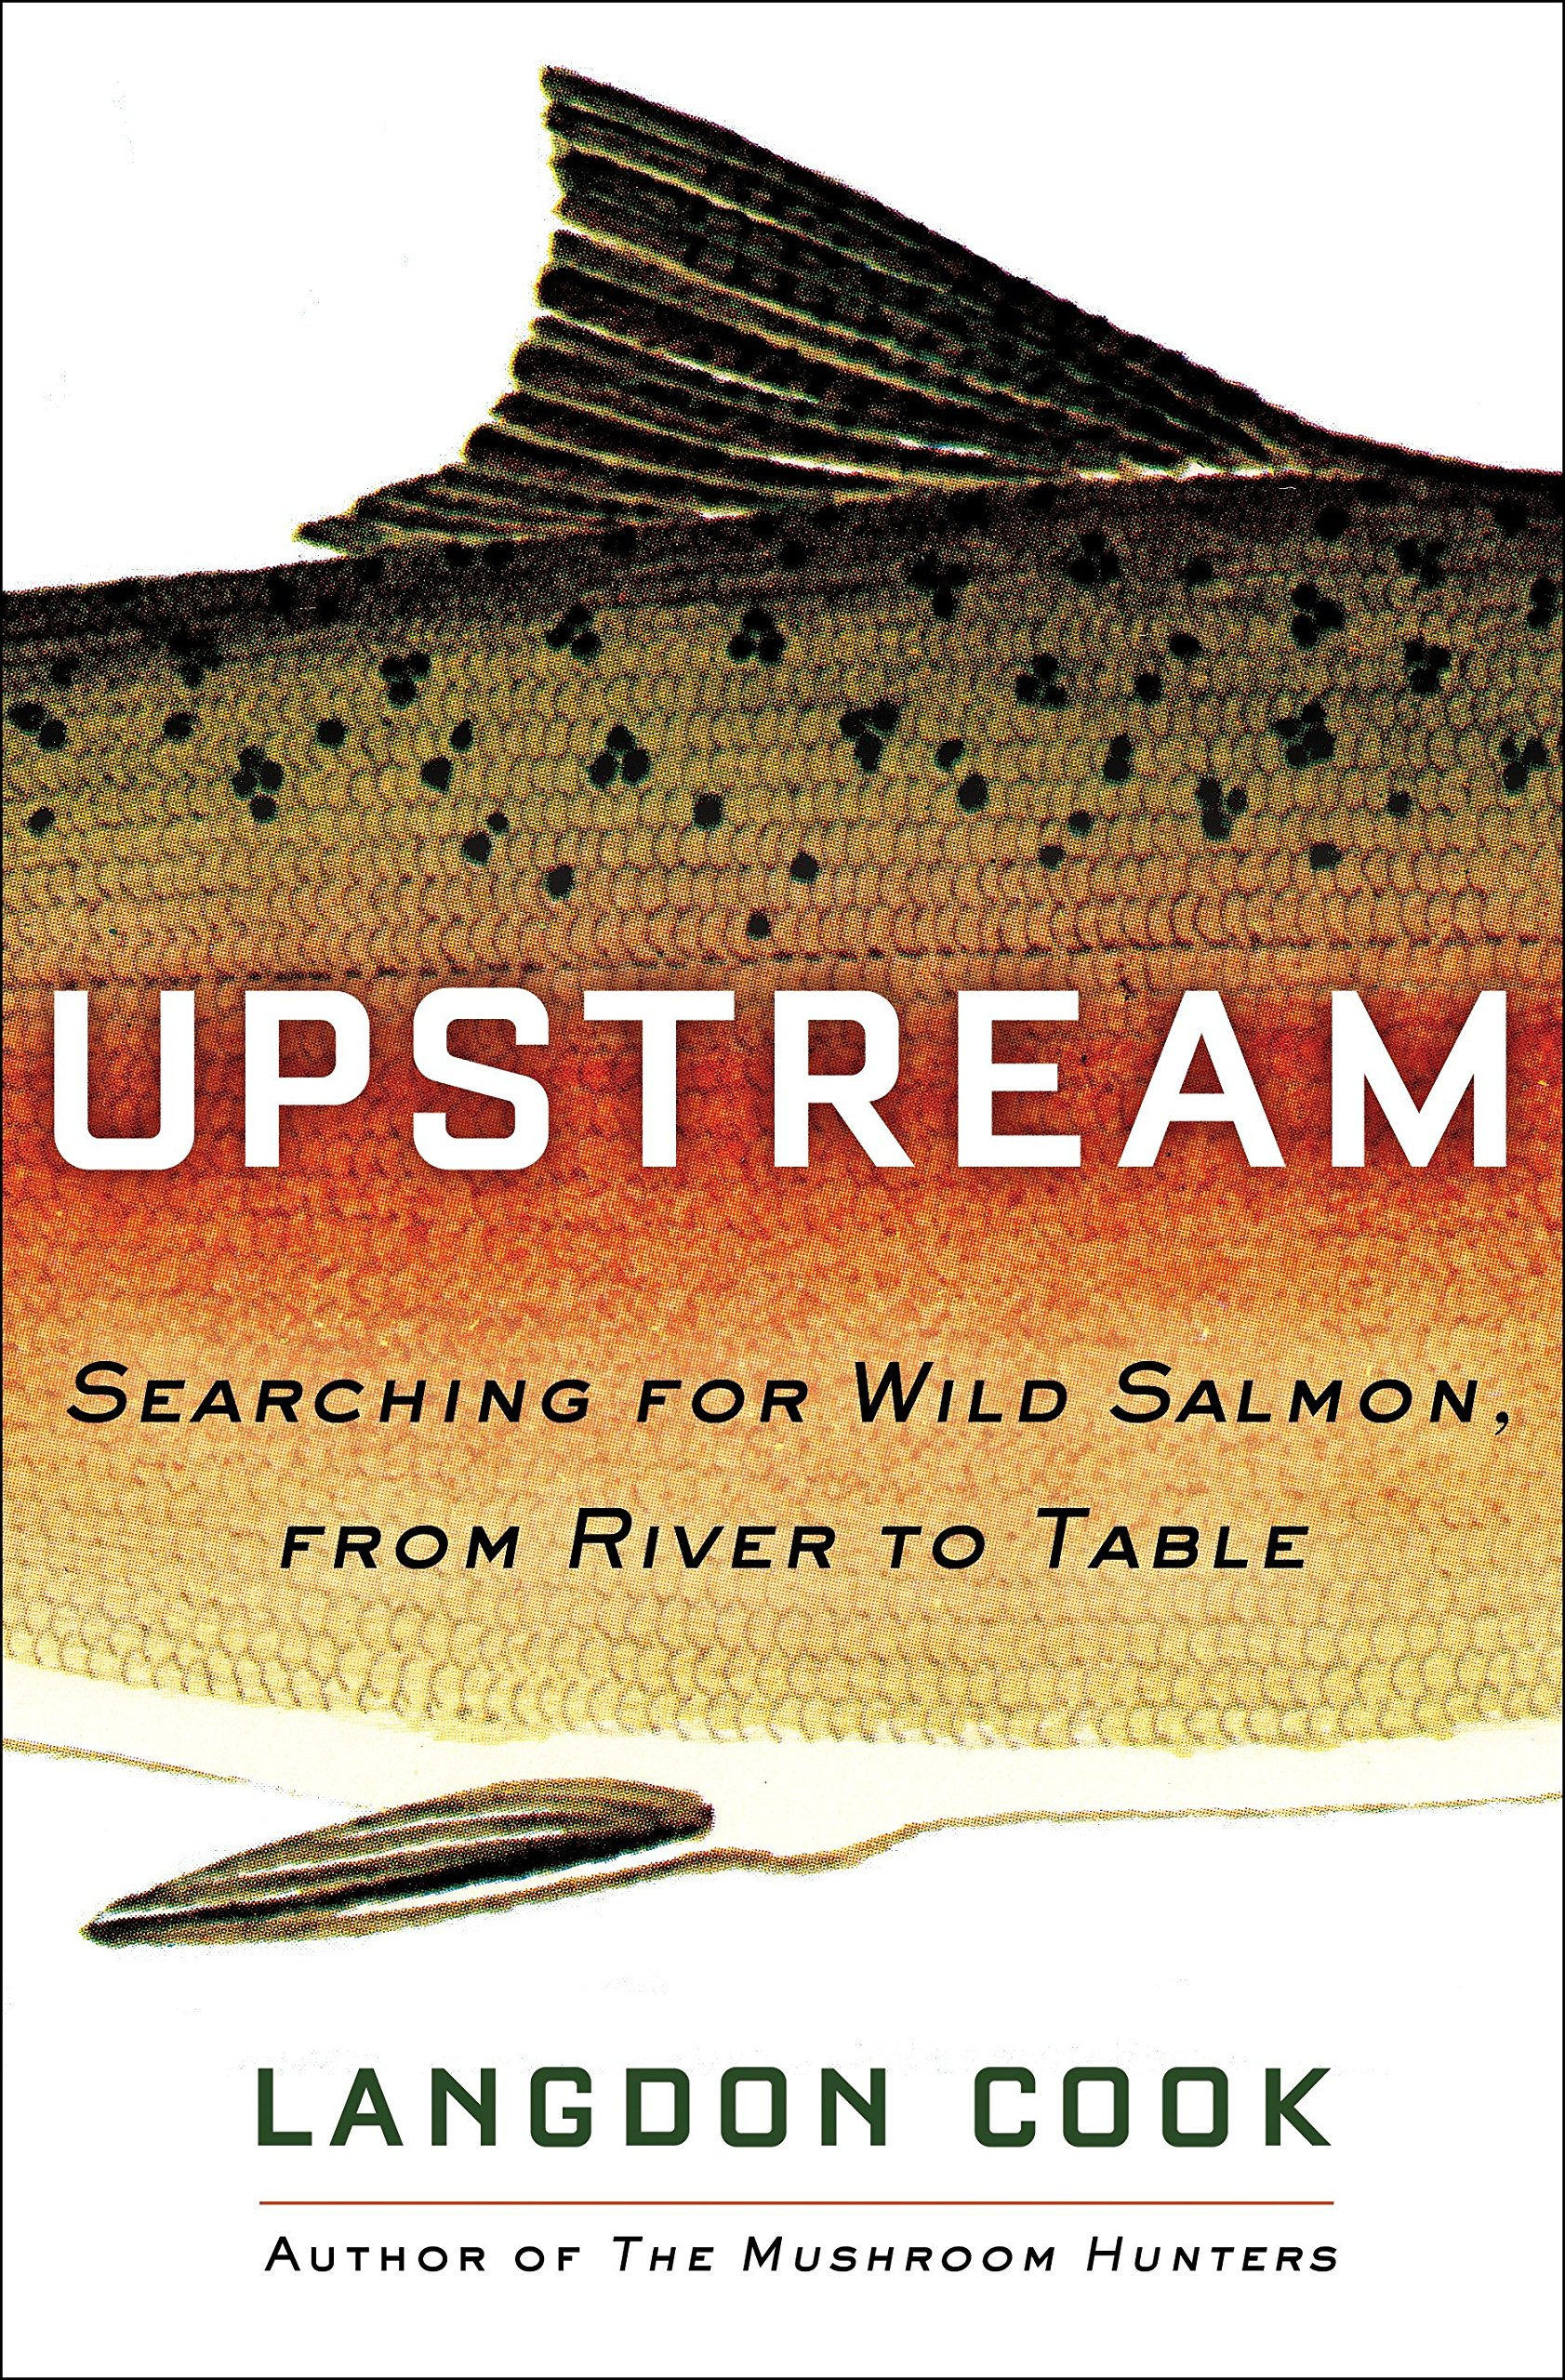 """Upstream: Searching for Wild Salmon, from River to Table by Langdon Cook - """"Invigorating . . . Mr. Cook is a congenial and intrepid companion, happily hiking into hinterlands and snorkeling in headwaters. Along the way we learn about filleting techniques, native cooking methods and self-pollinating almond trees, and his continual curiosity ensures that the narrative unfurls gradually, like a long spey cast. . . . With a pedigree that includes Mark Kurlansky, John McPhee and Roderick Haig-Brown, Mr. Cook's style is suitably fluent, an occasional phrase flashing like a flank in the current. . . . For all its rehearsal of the perils and vicissitudes facing Pacific salmon, Upstream remains a celebration.""""—The Wall Street Journal"""